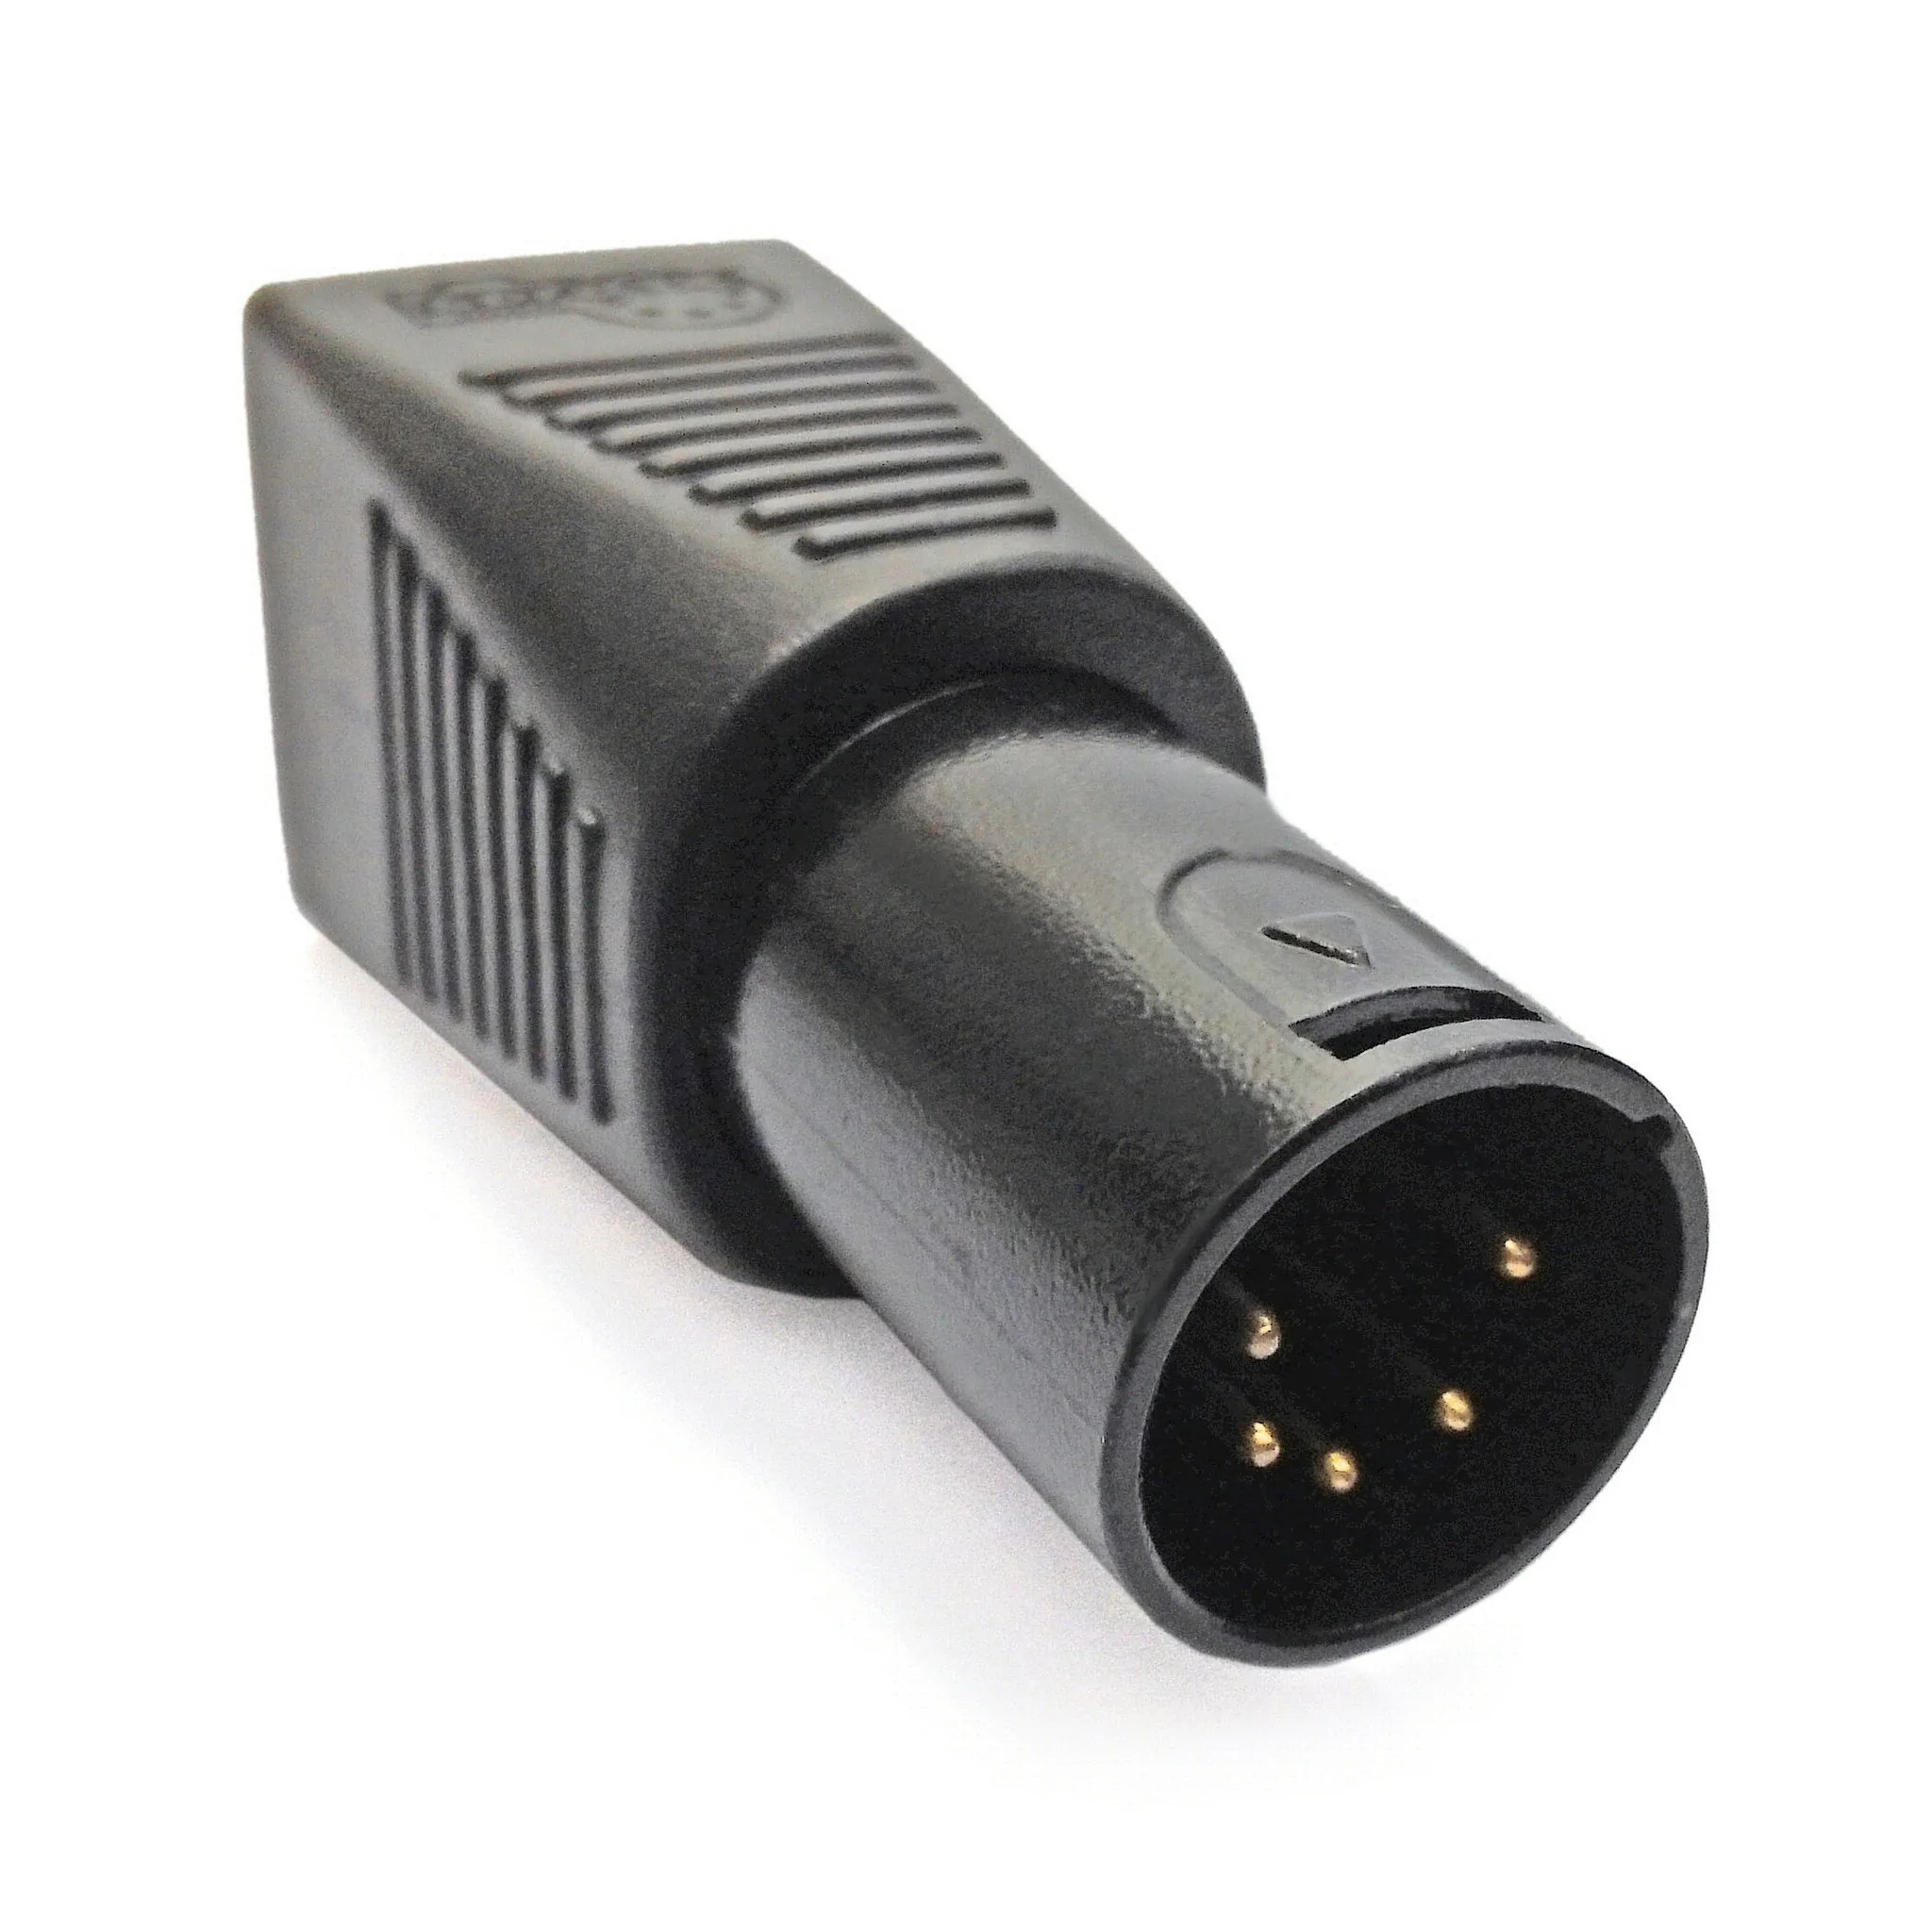 small resolution of xlr 5 pin to rj45 ethernet moss led